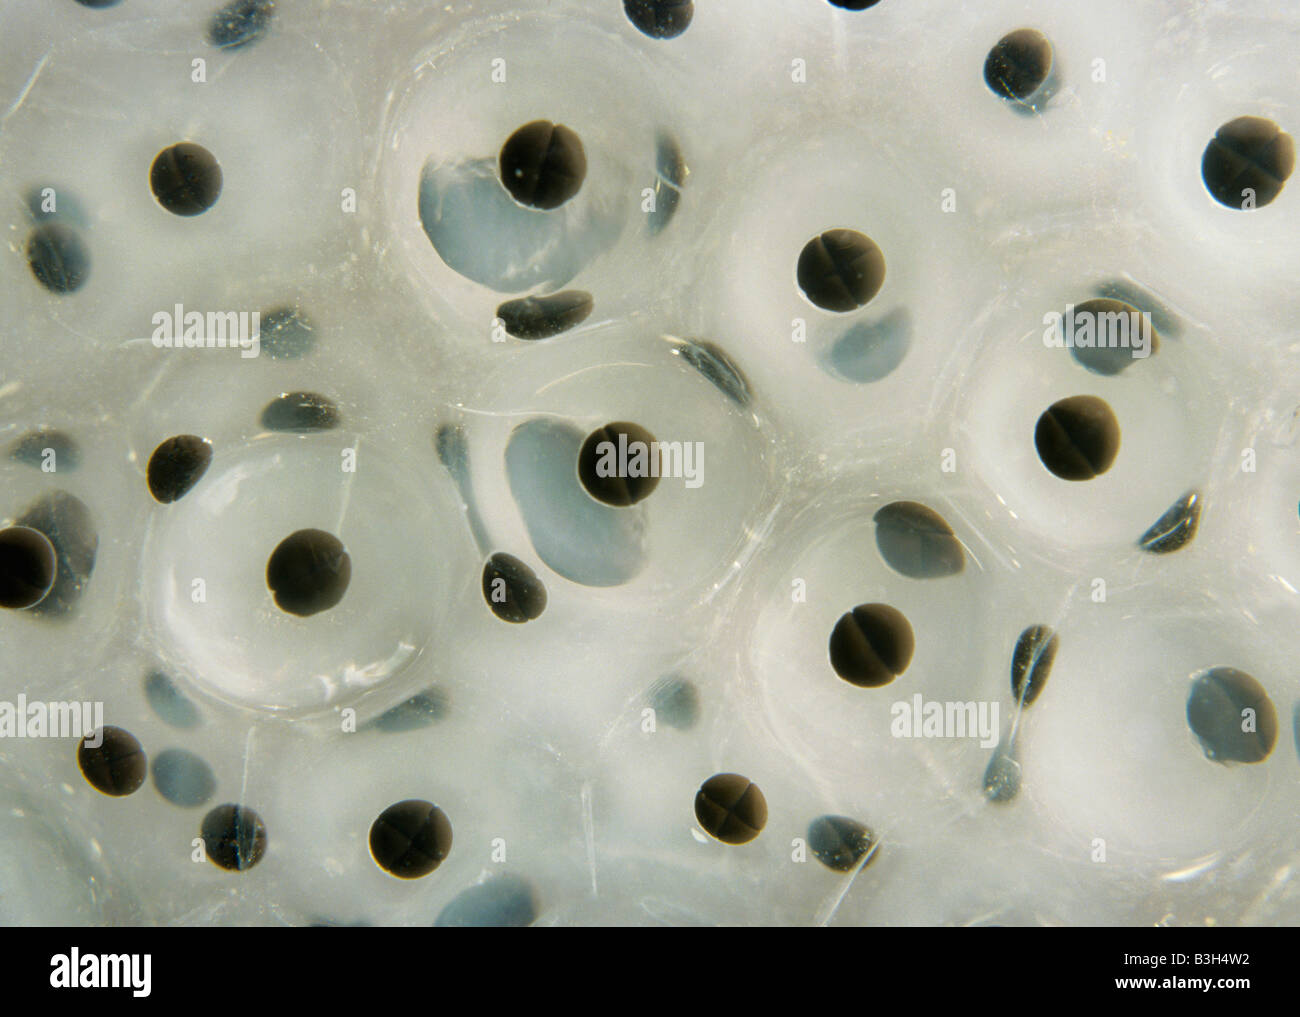 Frog spawn Rana temporaria showing 2 and 4 celled embryos surrounded by protective jelly - Stock Image